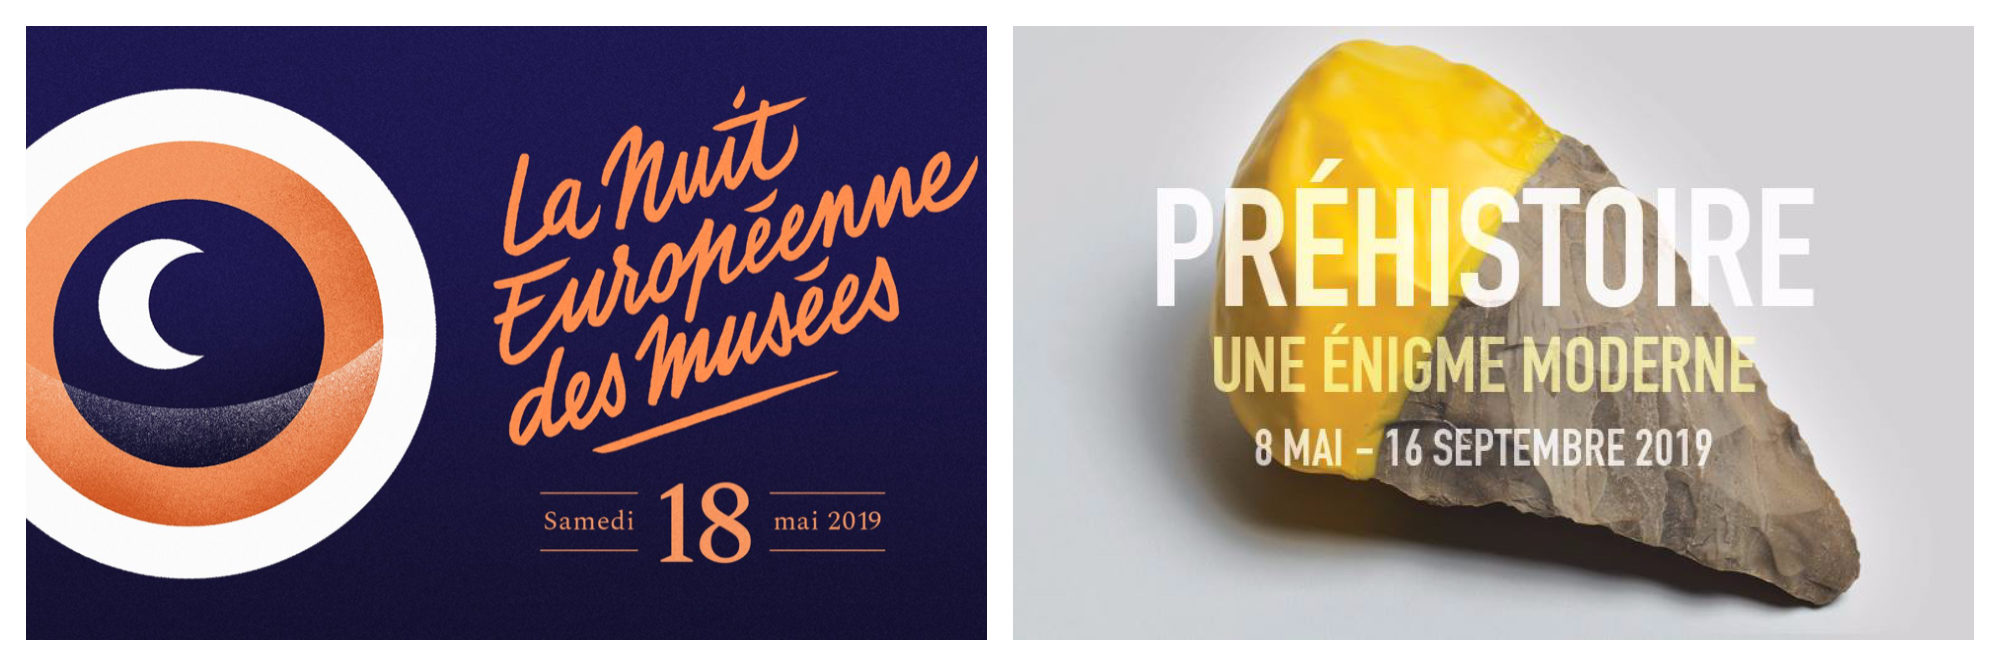 A poster for the Nuit Européenne des Musées event in Paris in May (left). A poster for a prehistory event in Paris this May (right).